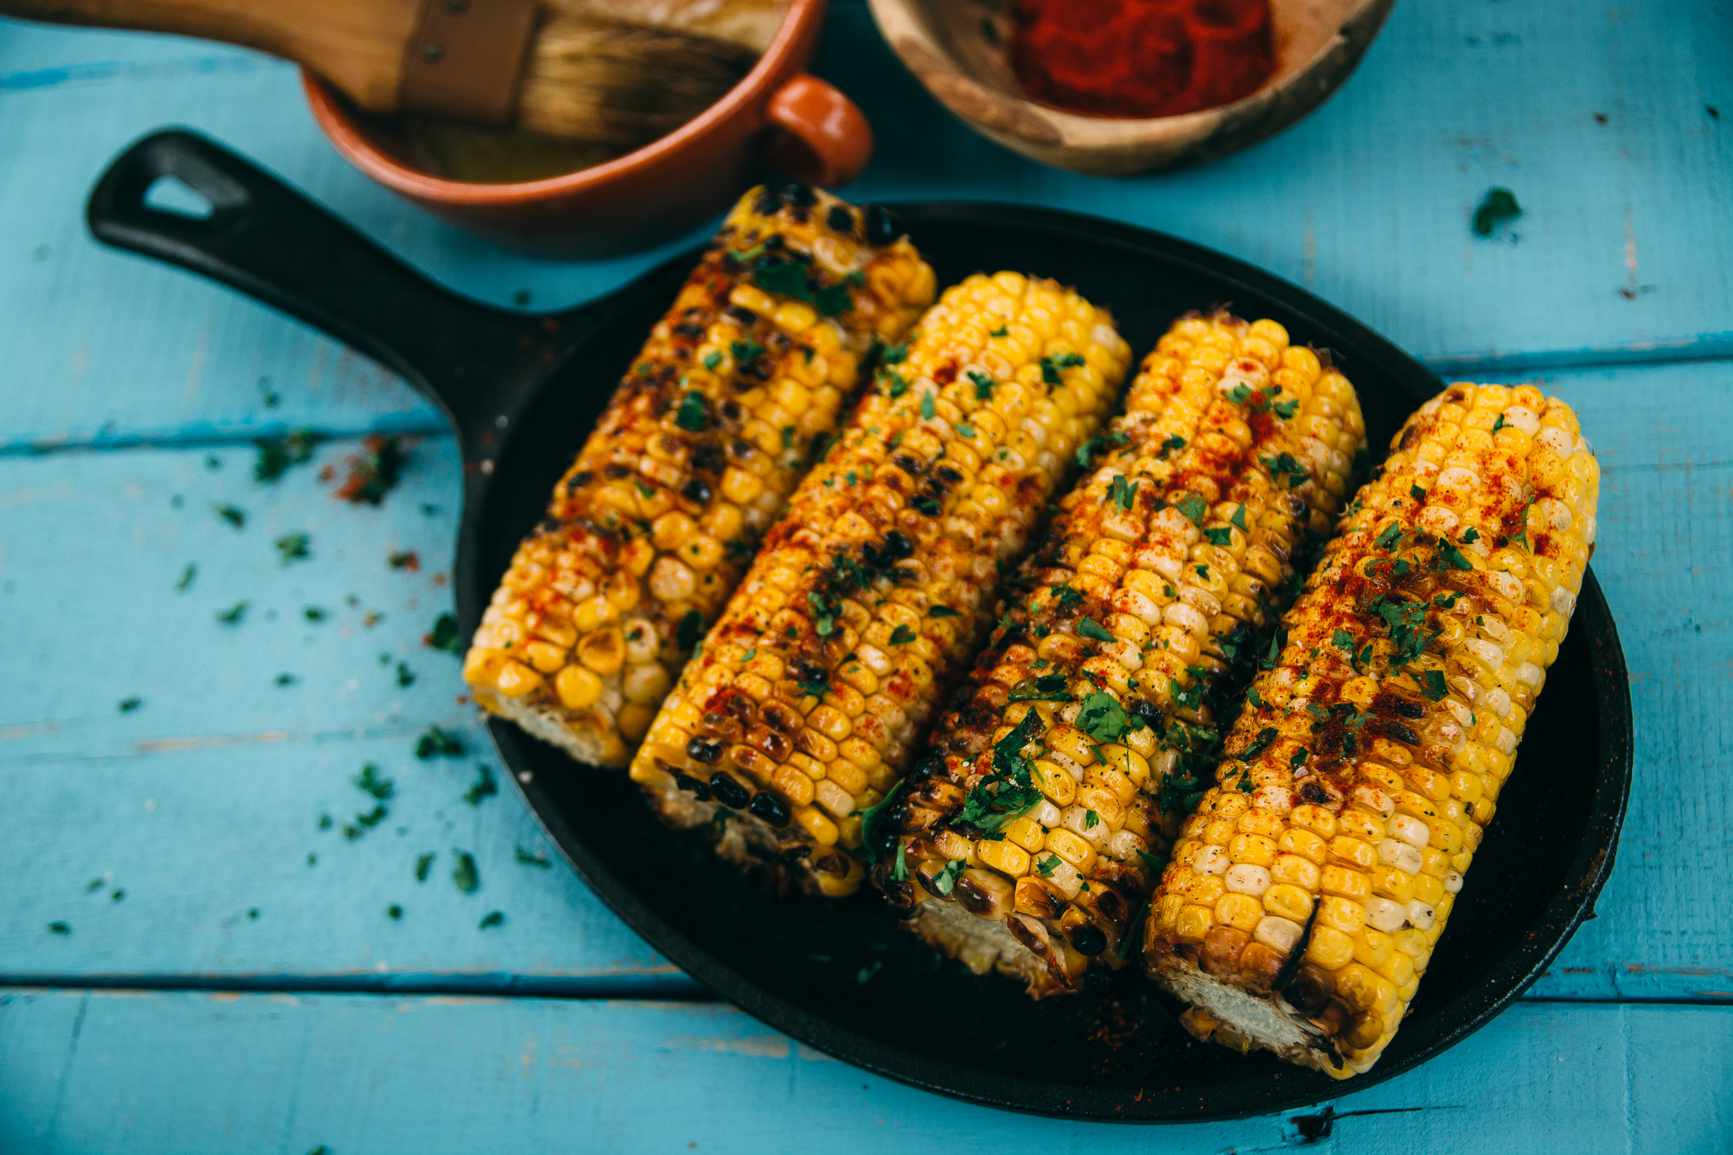 Corn sprinkled with chili in cast iron skillet..